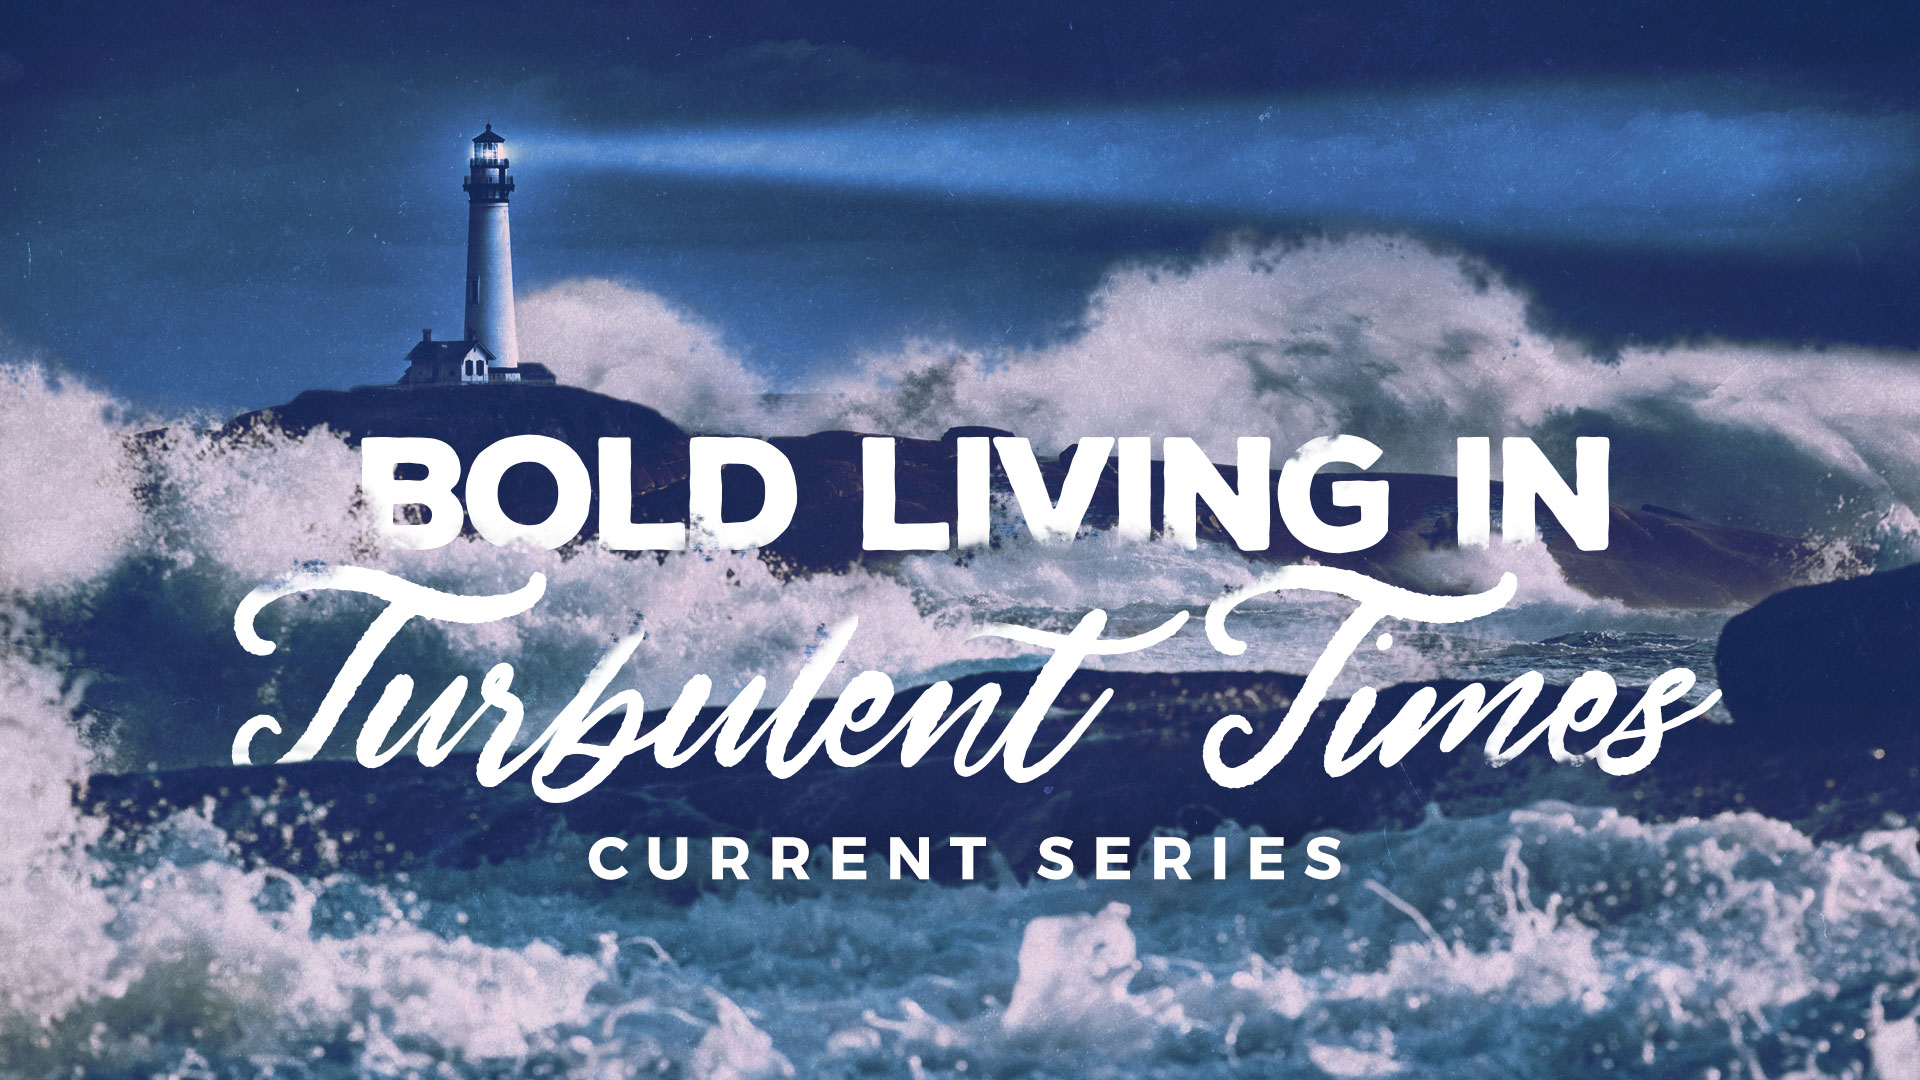 Bold Living in Turbulent Times